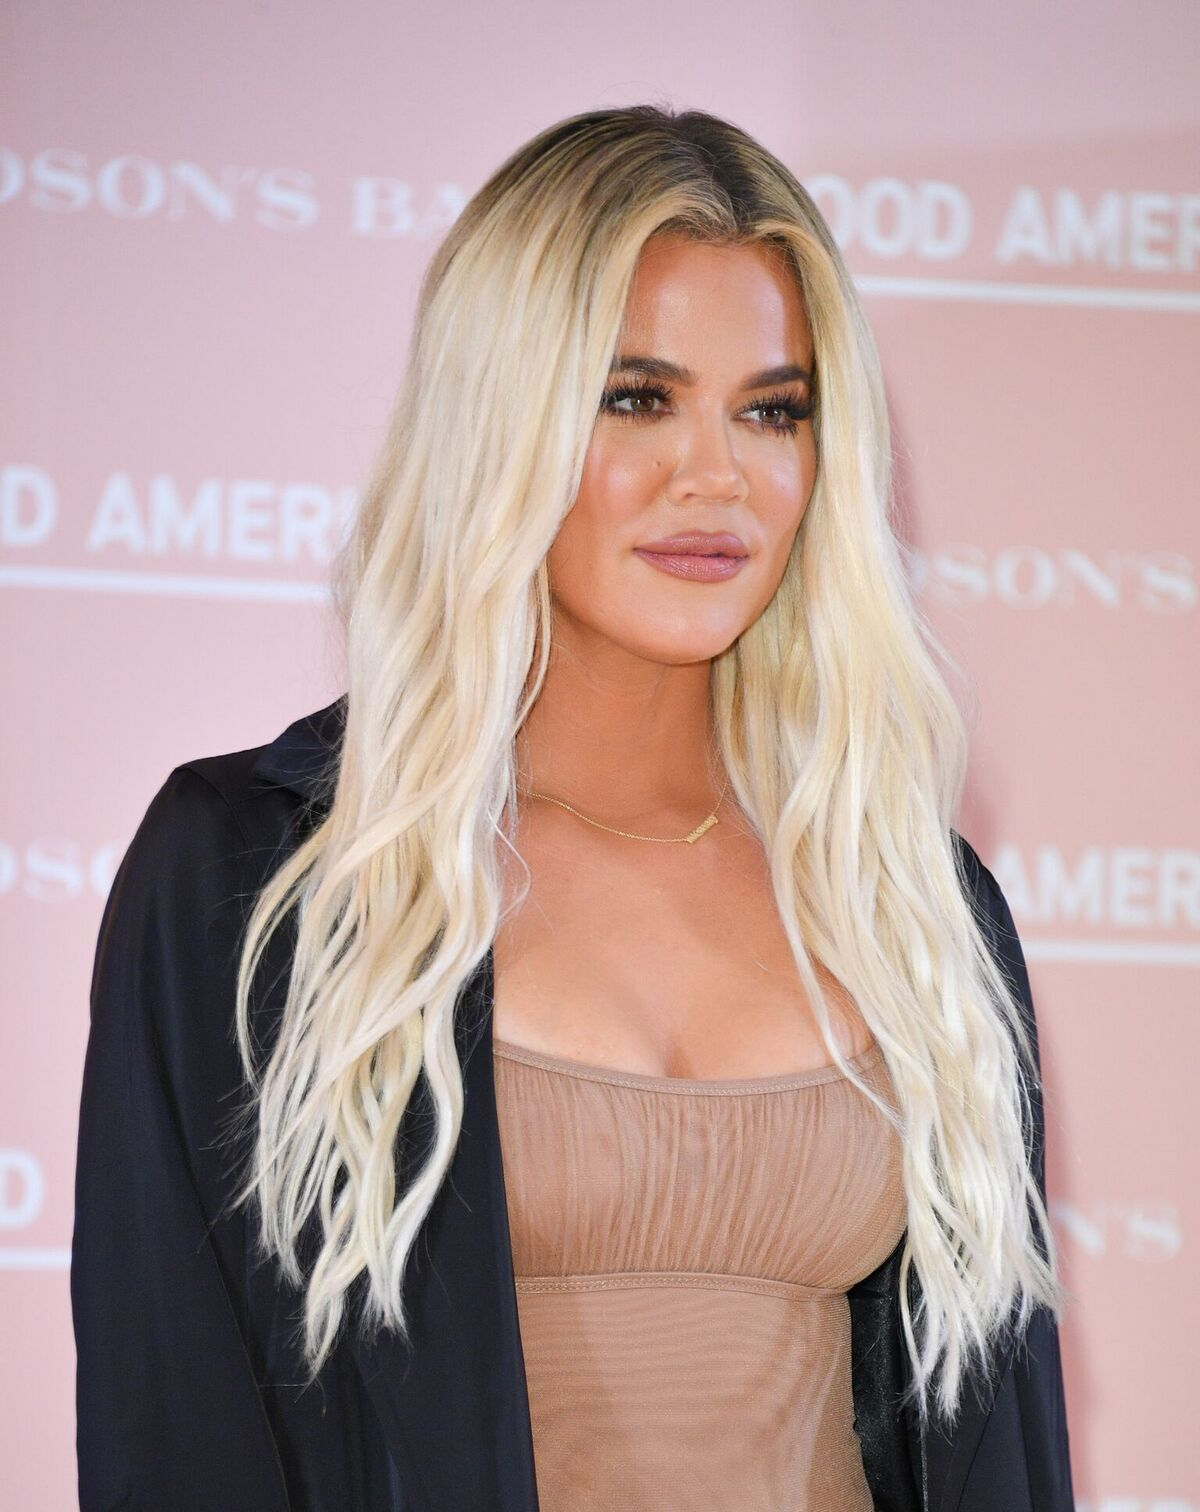 Khloe Kardashian attends Hudson's Bay's launch of Good American in Toronto on September 18, 2019 | Photo: Getty Images